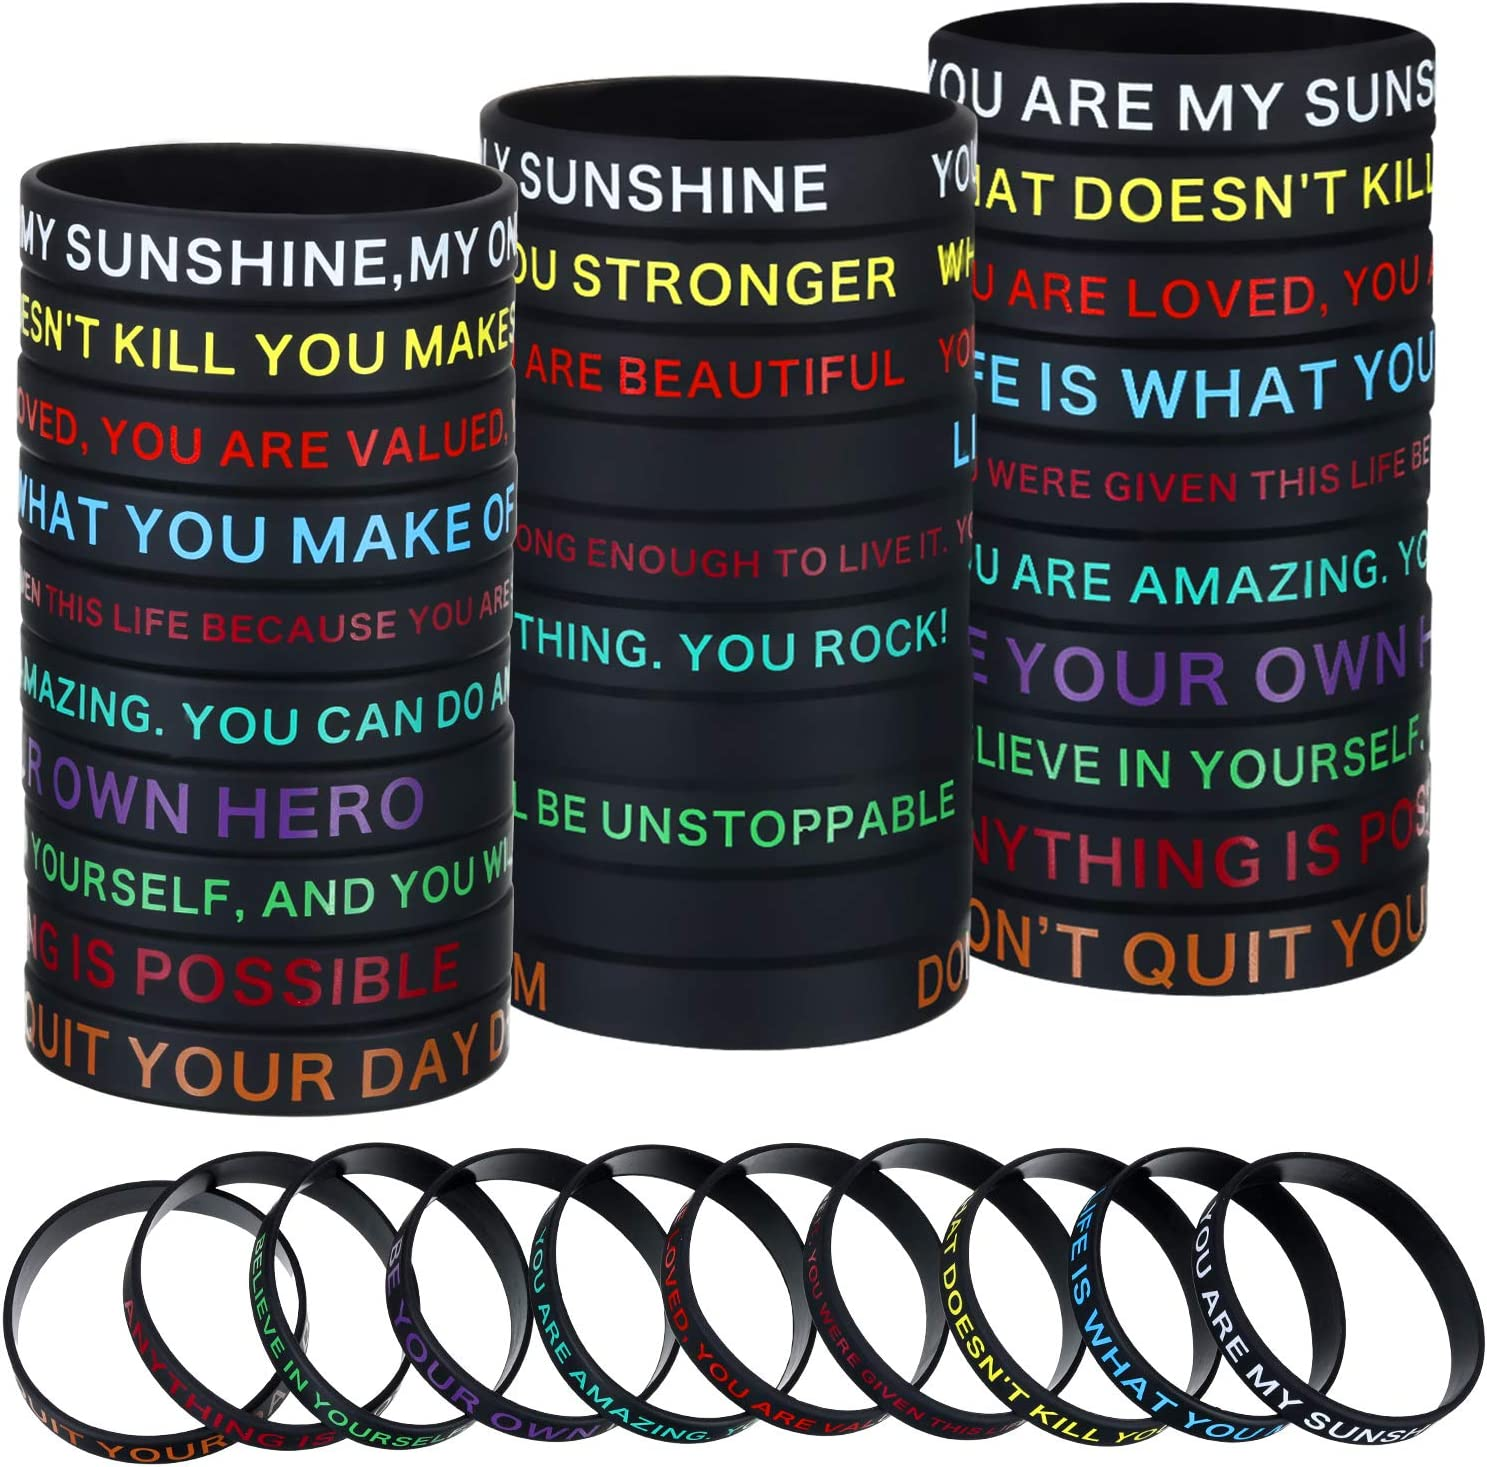 40 Pieces Motivational Silicone Wristbands Inspirational Rubber Bracelets with Positive Messages for Party Favors Chic Style Gifts for Men Women,10 Styles